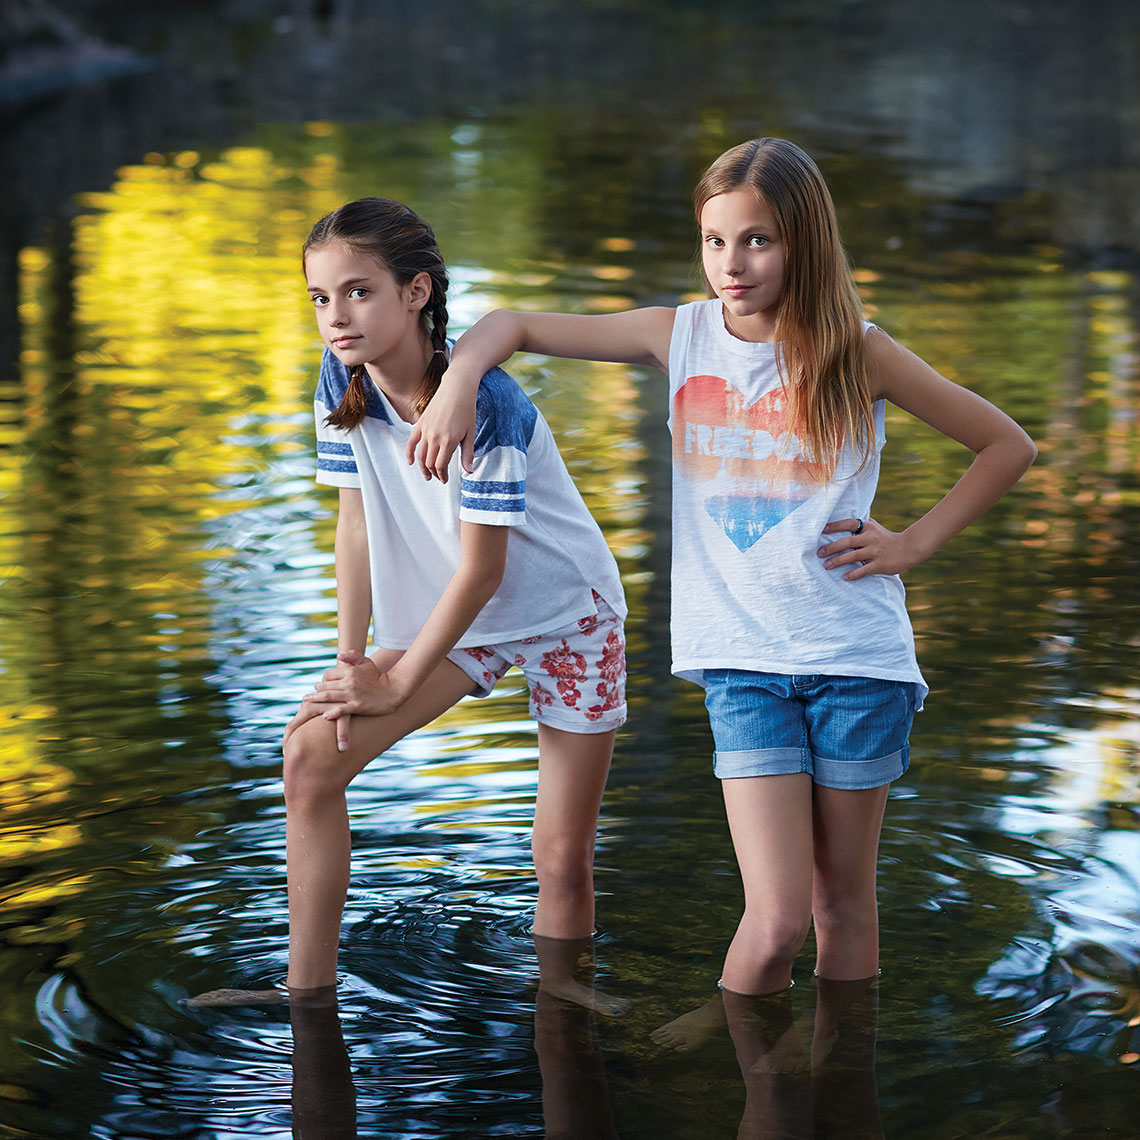 Color portrait of two sisters standing with an attitude in a creek in Highland Park by John Derryberry